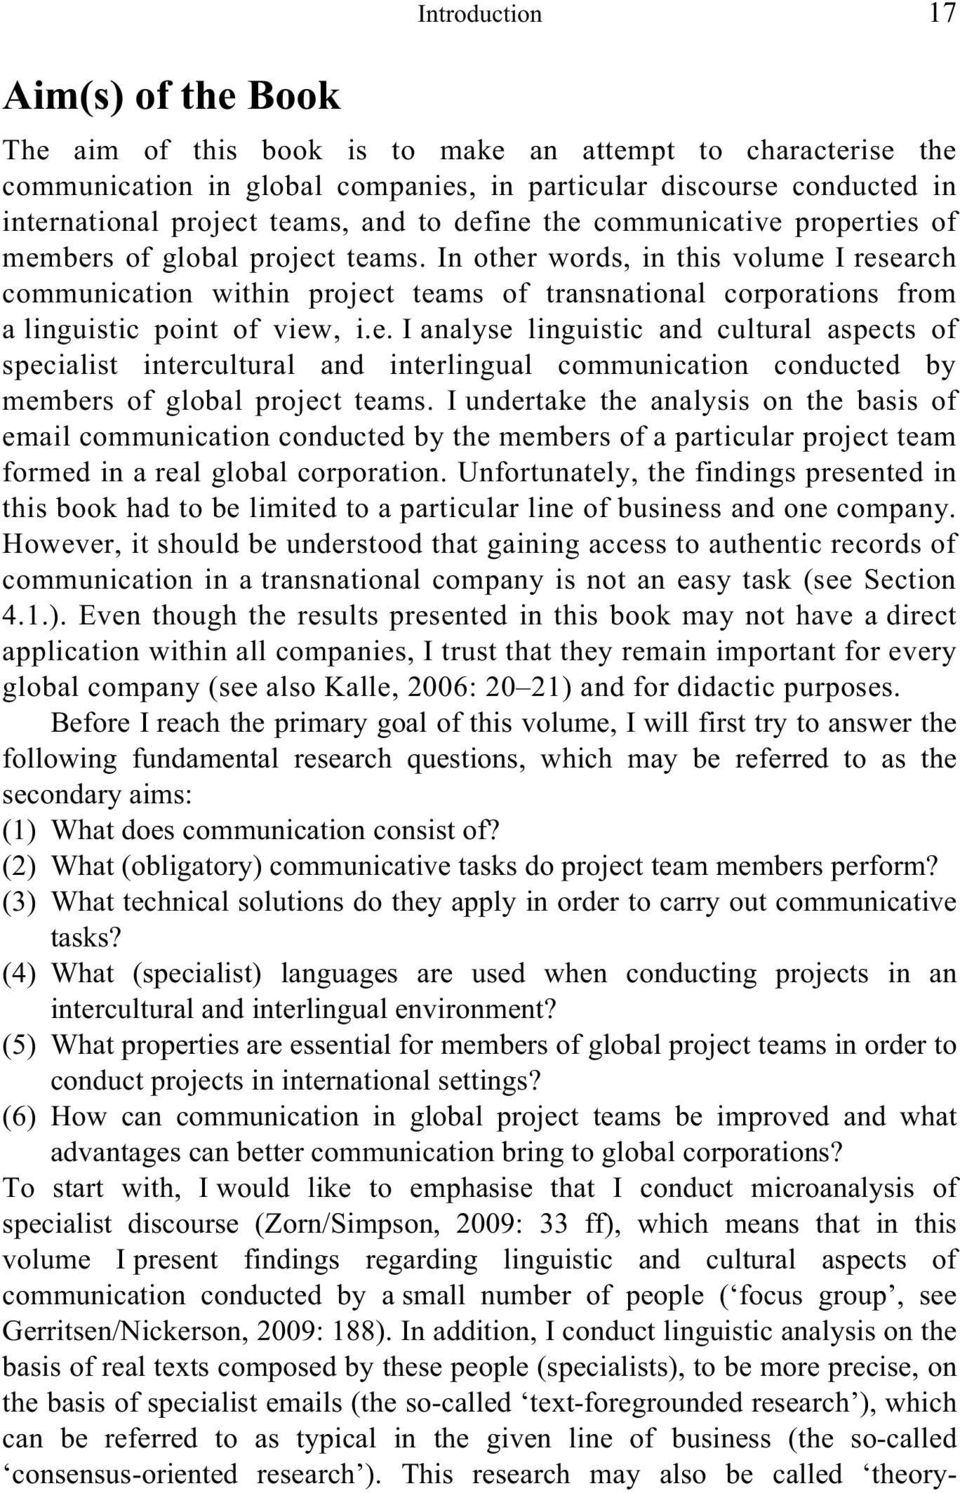 In other words, in this volume I research communication within project teams of transnational corporations from a linguistic point of view, i.e. I analyse linguistic and cultural aspects of specialist intercultural and interlingual communication conducted by members of global project teams.